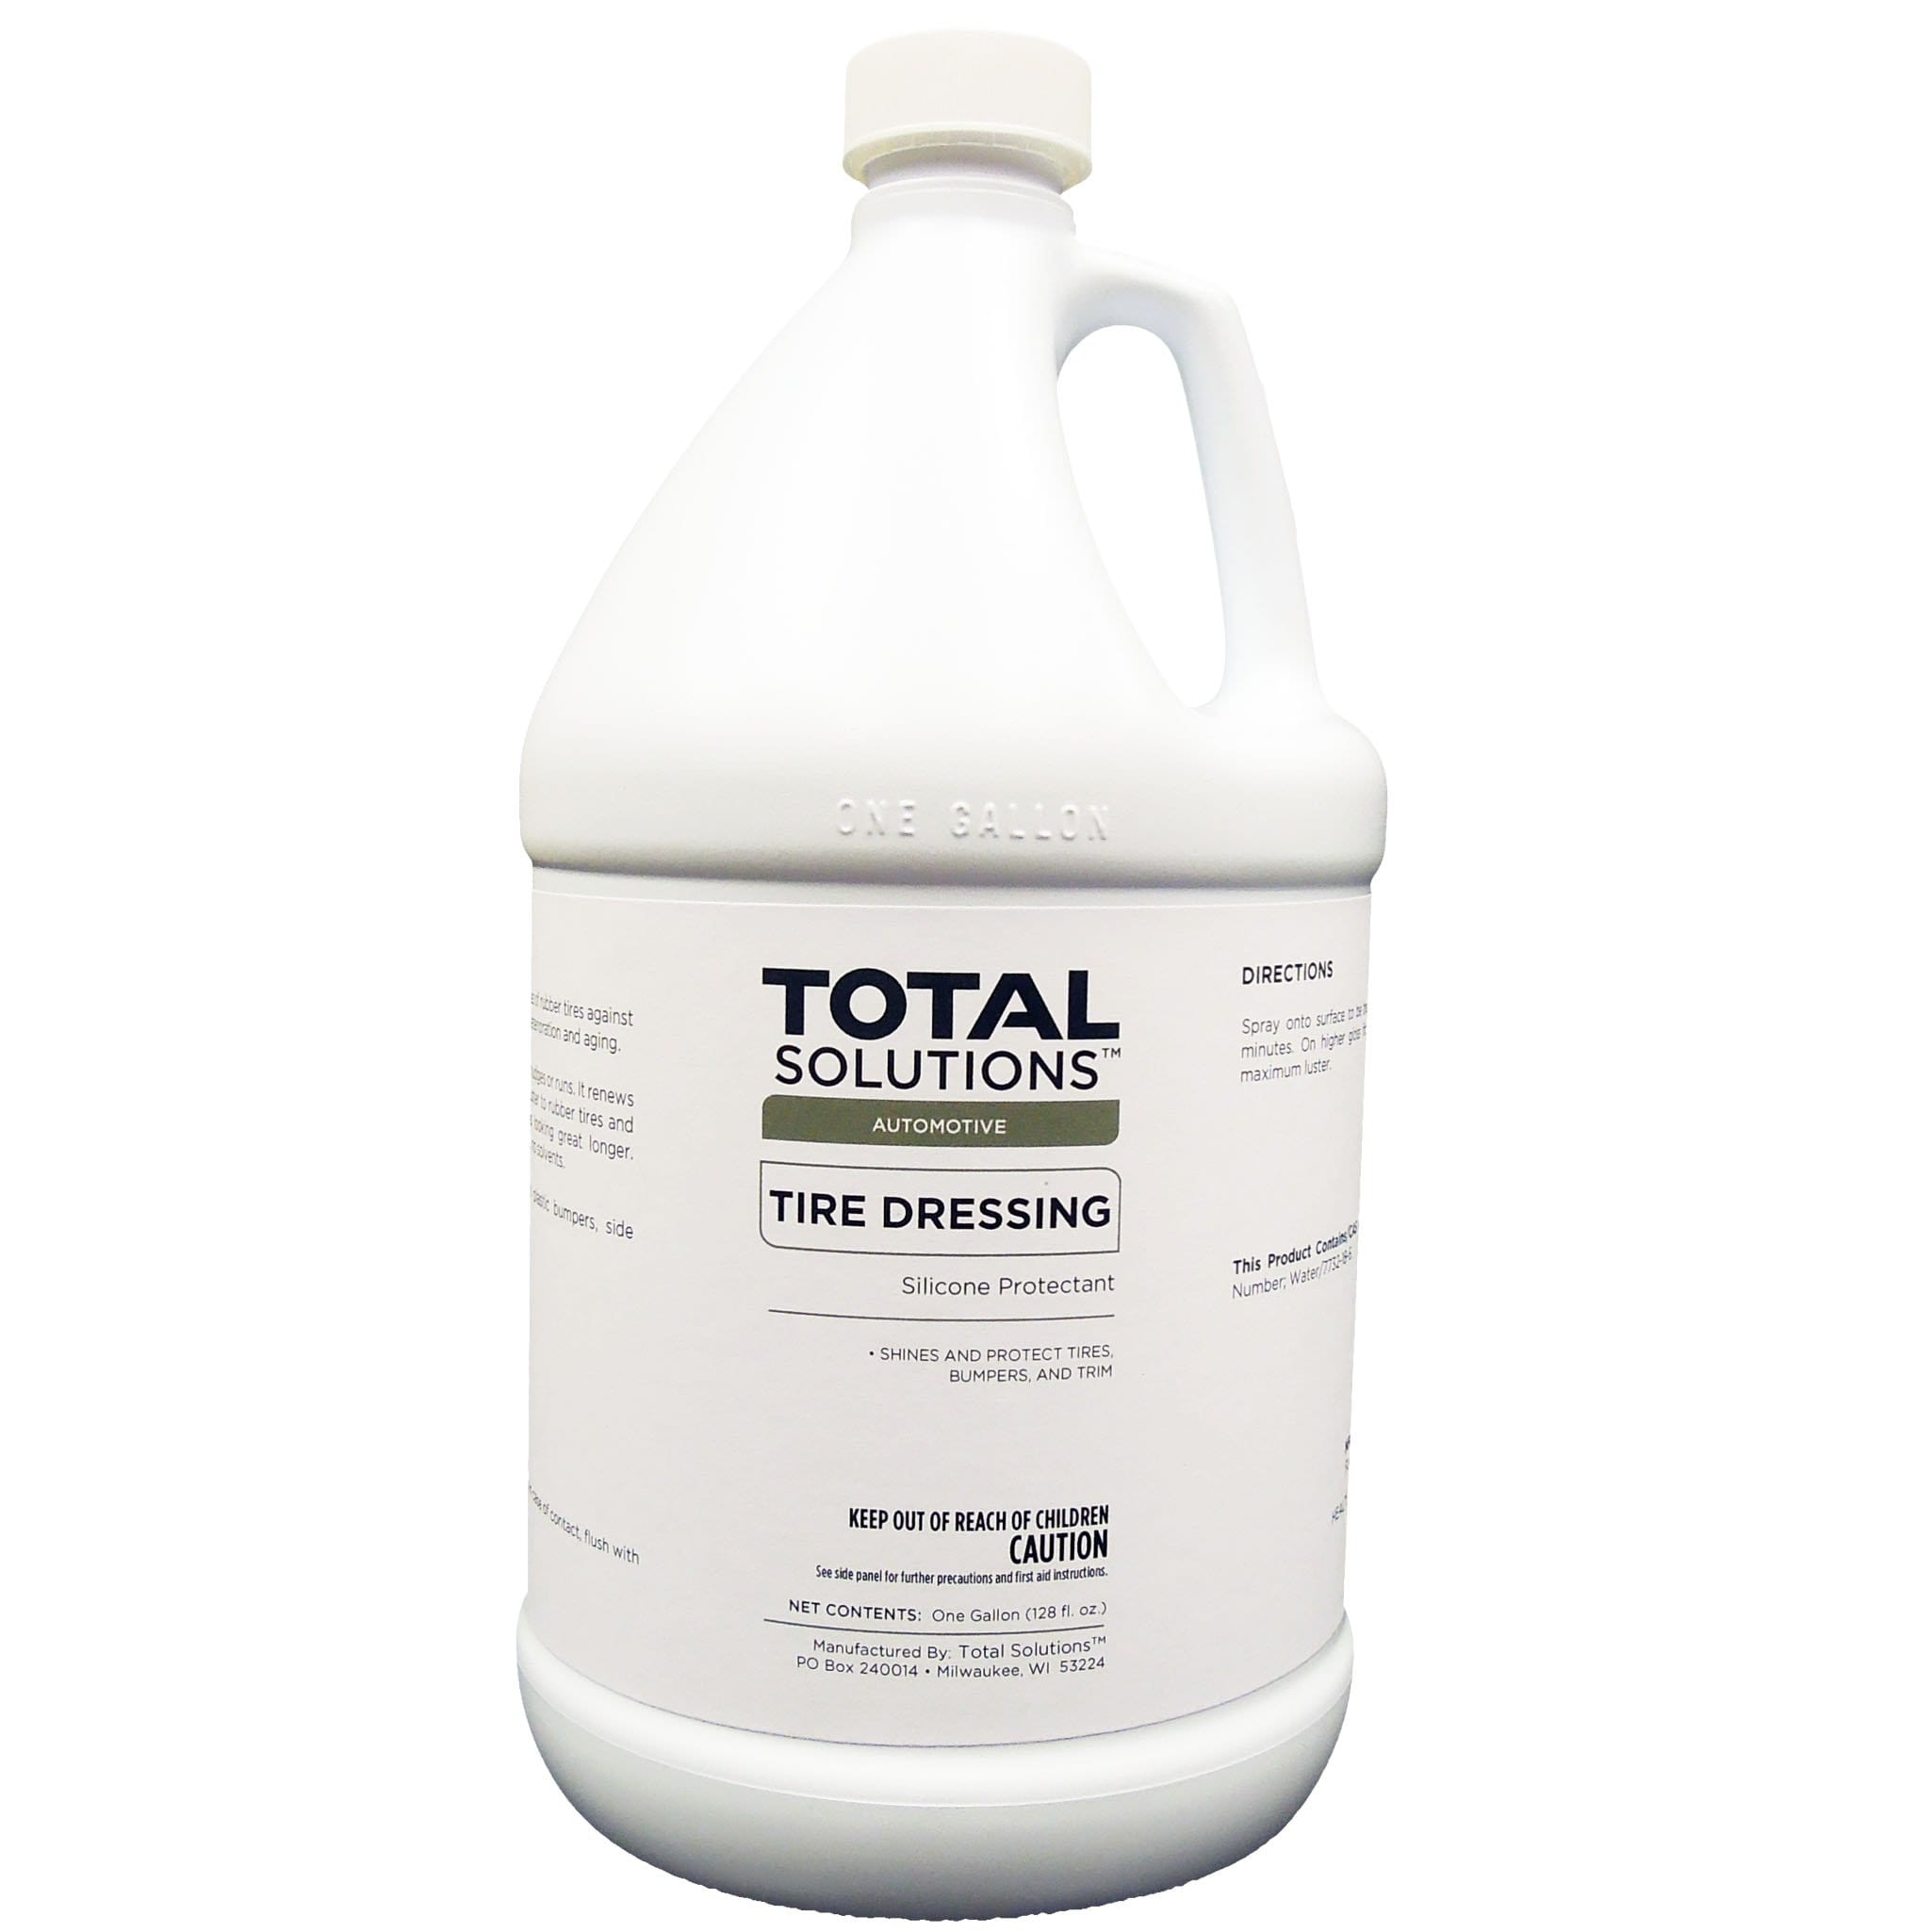 Tire Dressing, Water-based silicone protectant - 4 Gallons